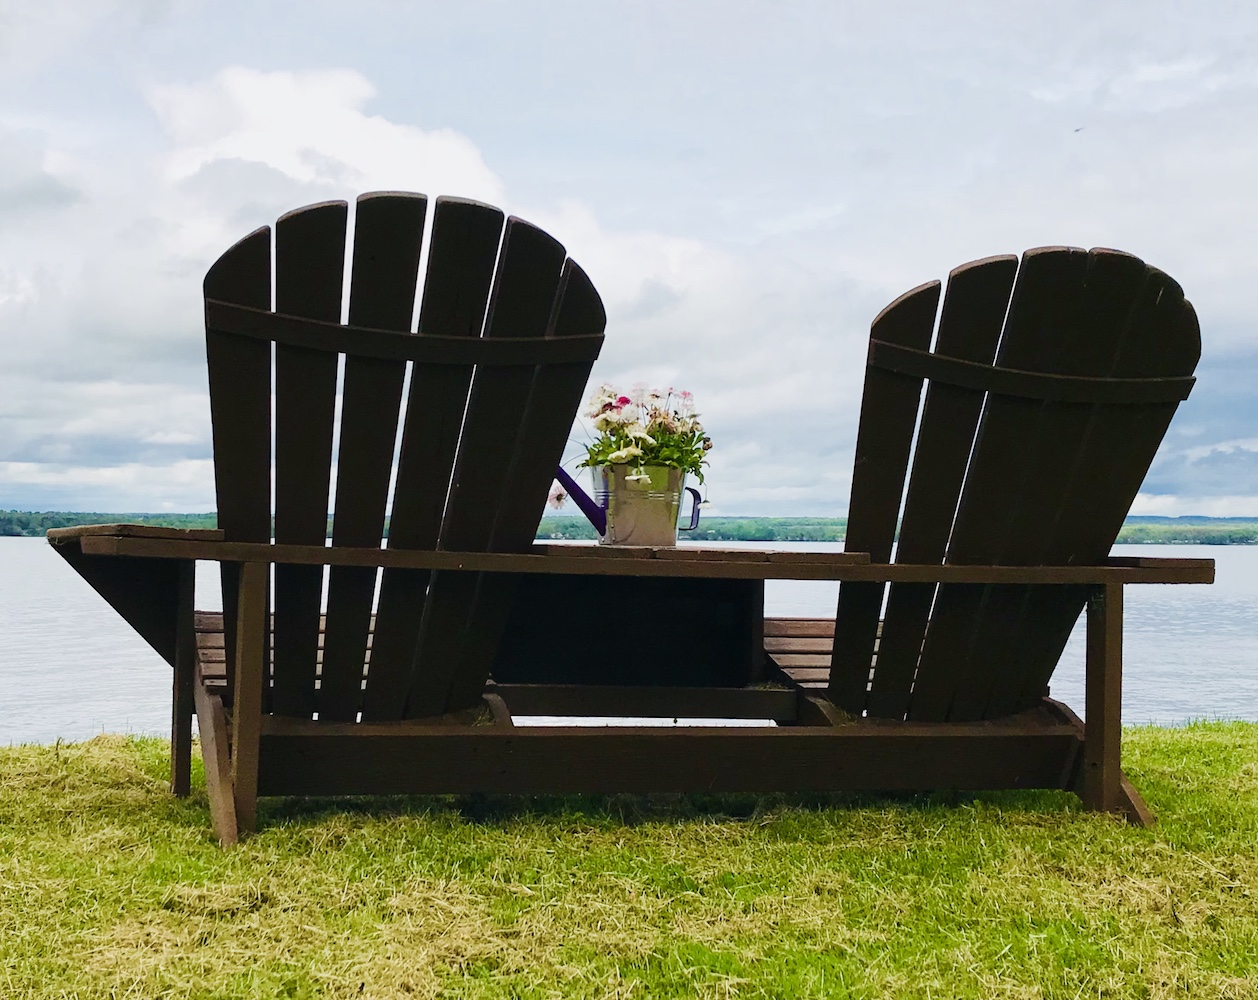 Tillinghast Manor - Cayuga Lake chairs by the lake